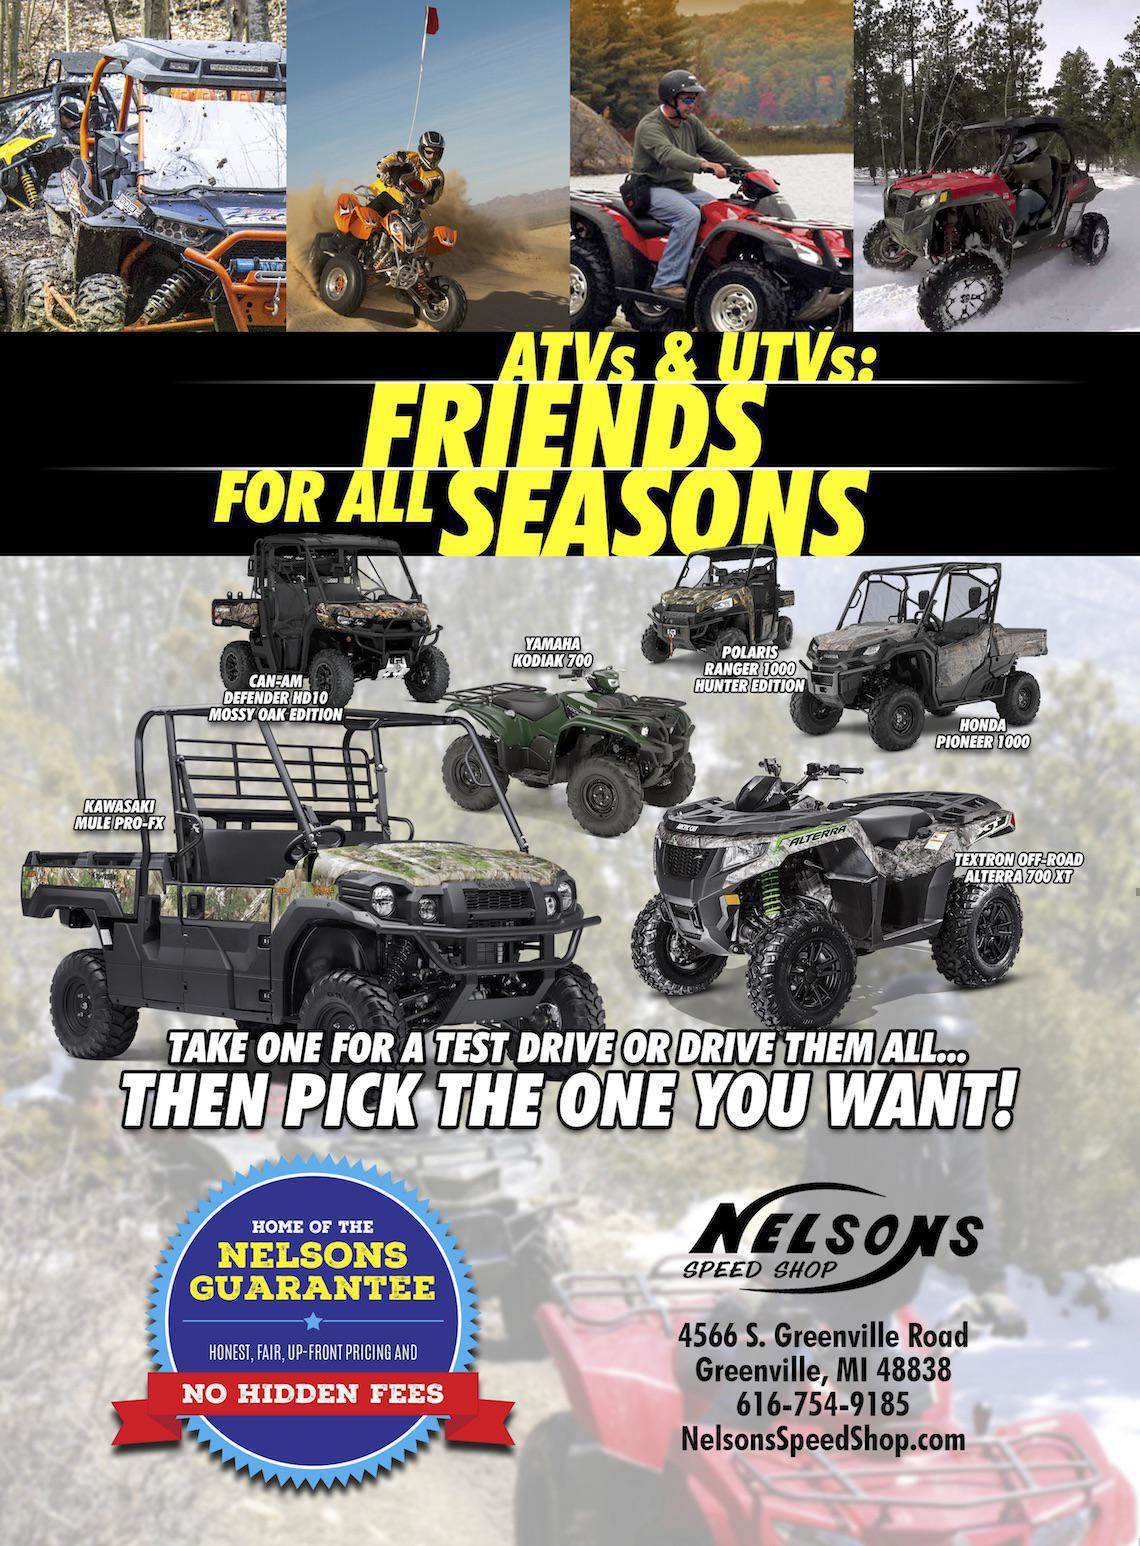 2018-Friends-For-All-Seasons-Nelsons 1140